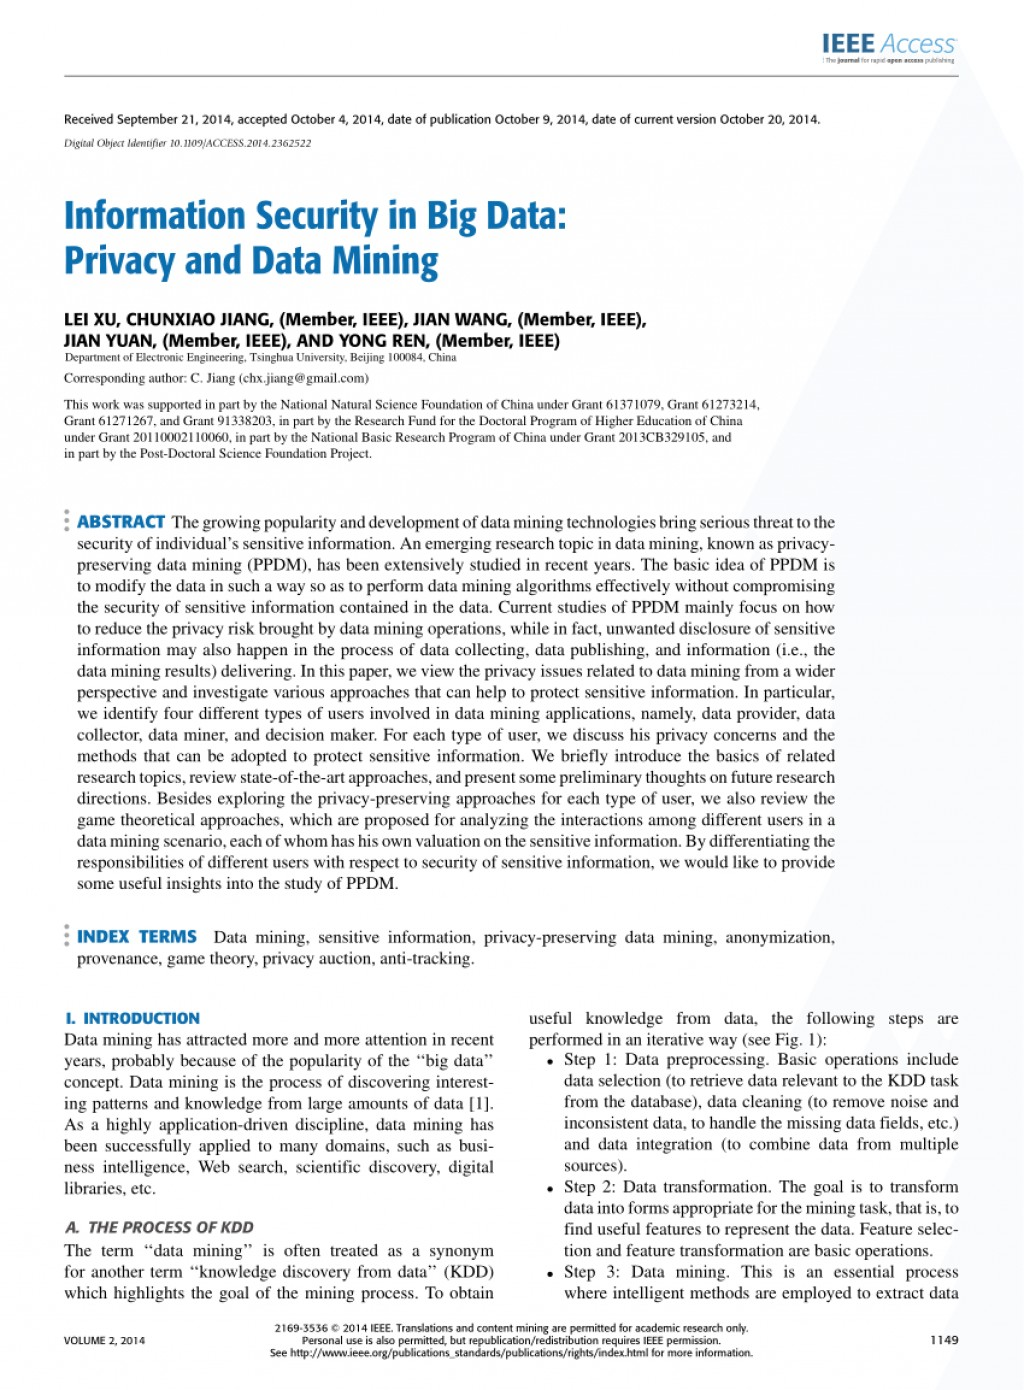 004 Research Paper Cyber Security Ieee Wondrous Large